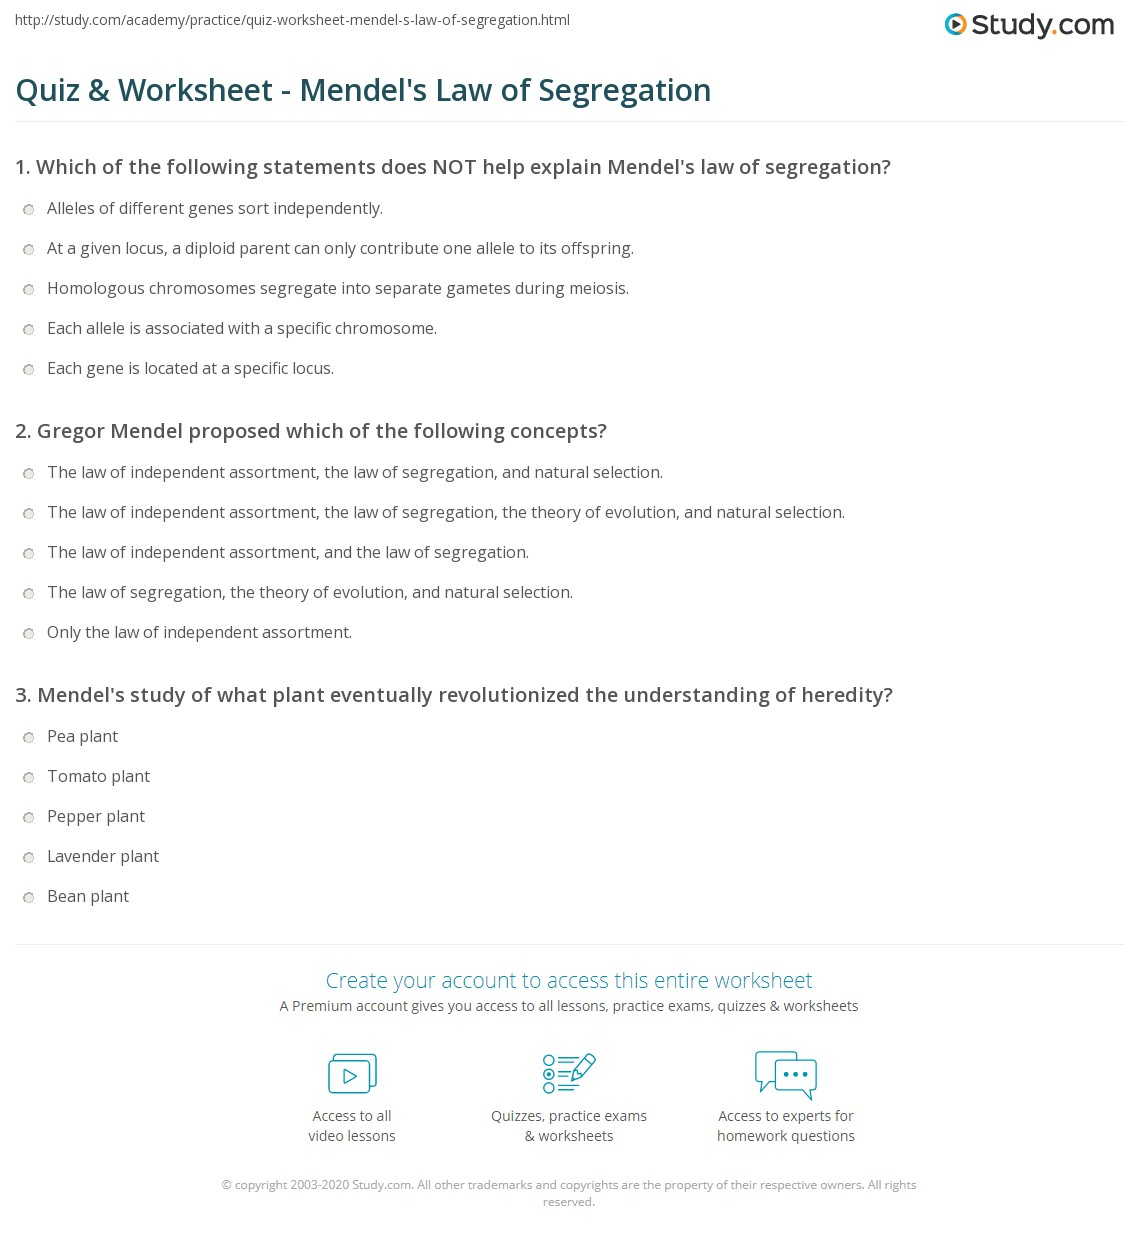 quiz worksheet mendel 39 s law of segregation. Black Bedroom Furniture Sets. Home Design Ideas